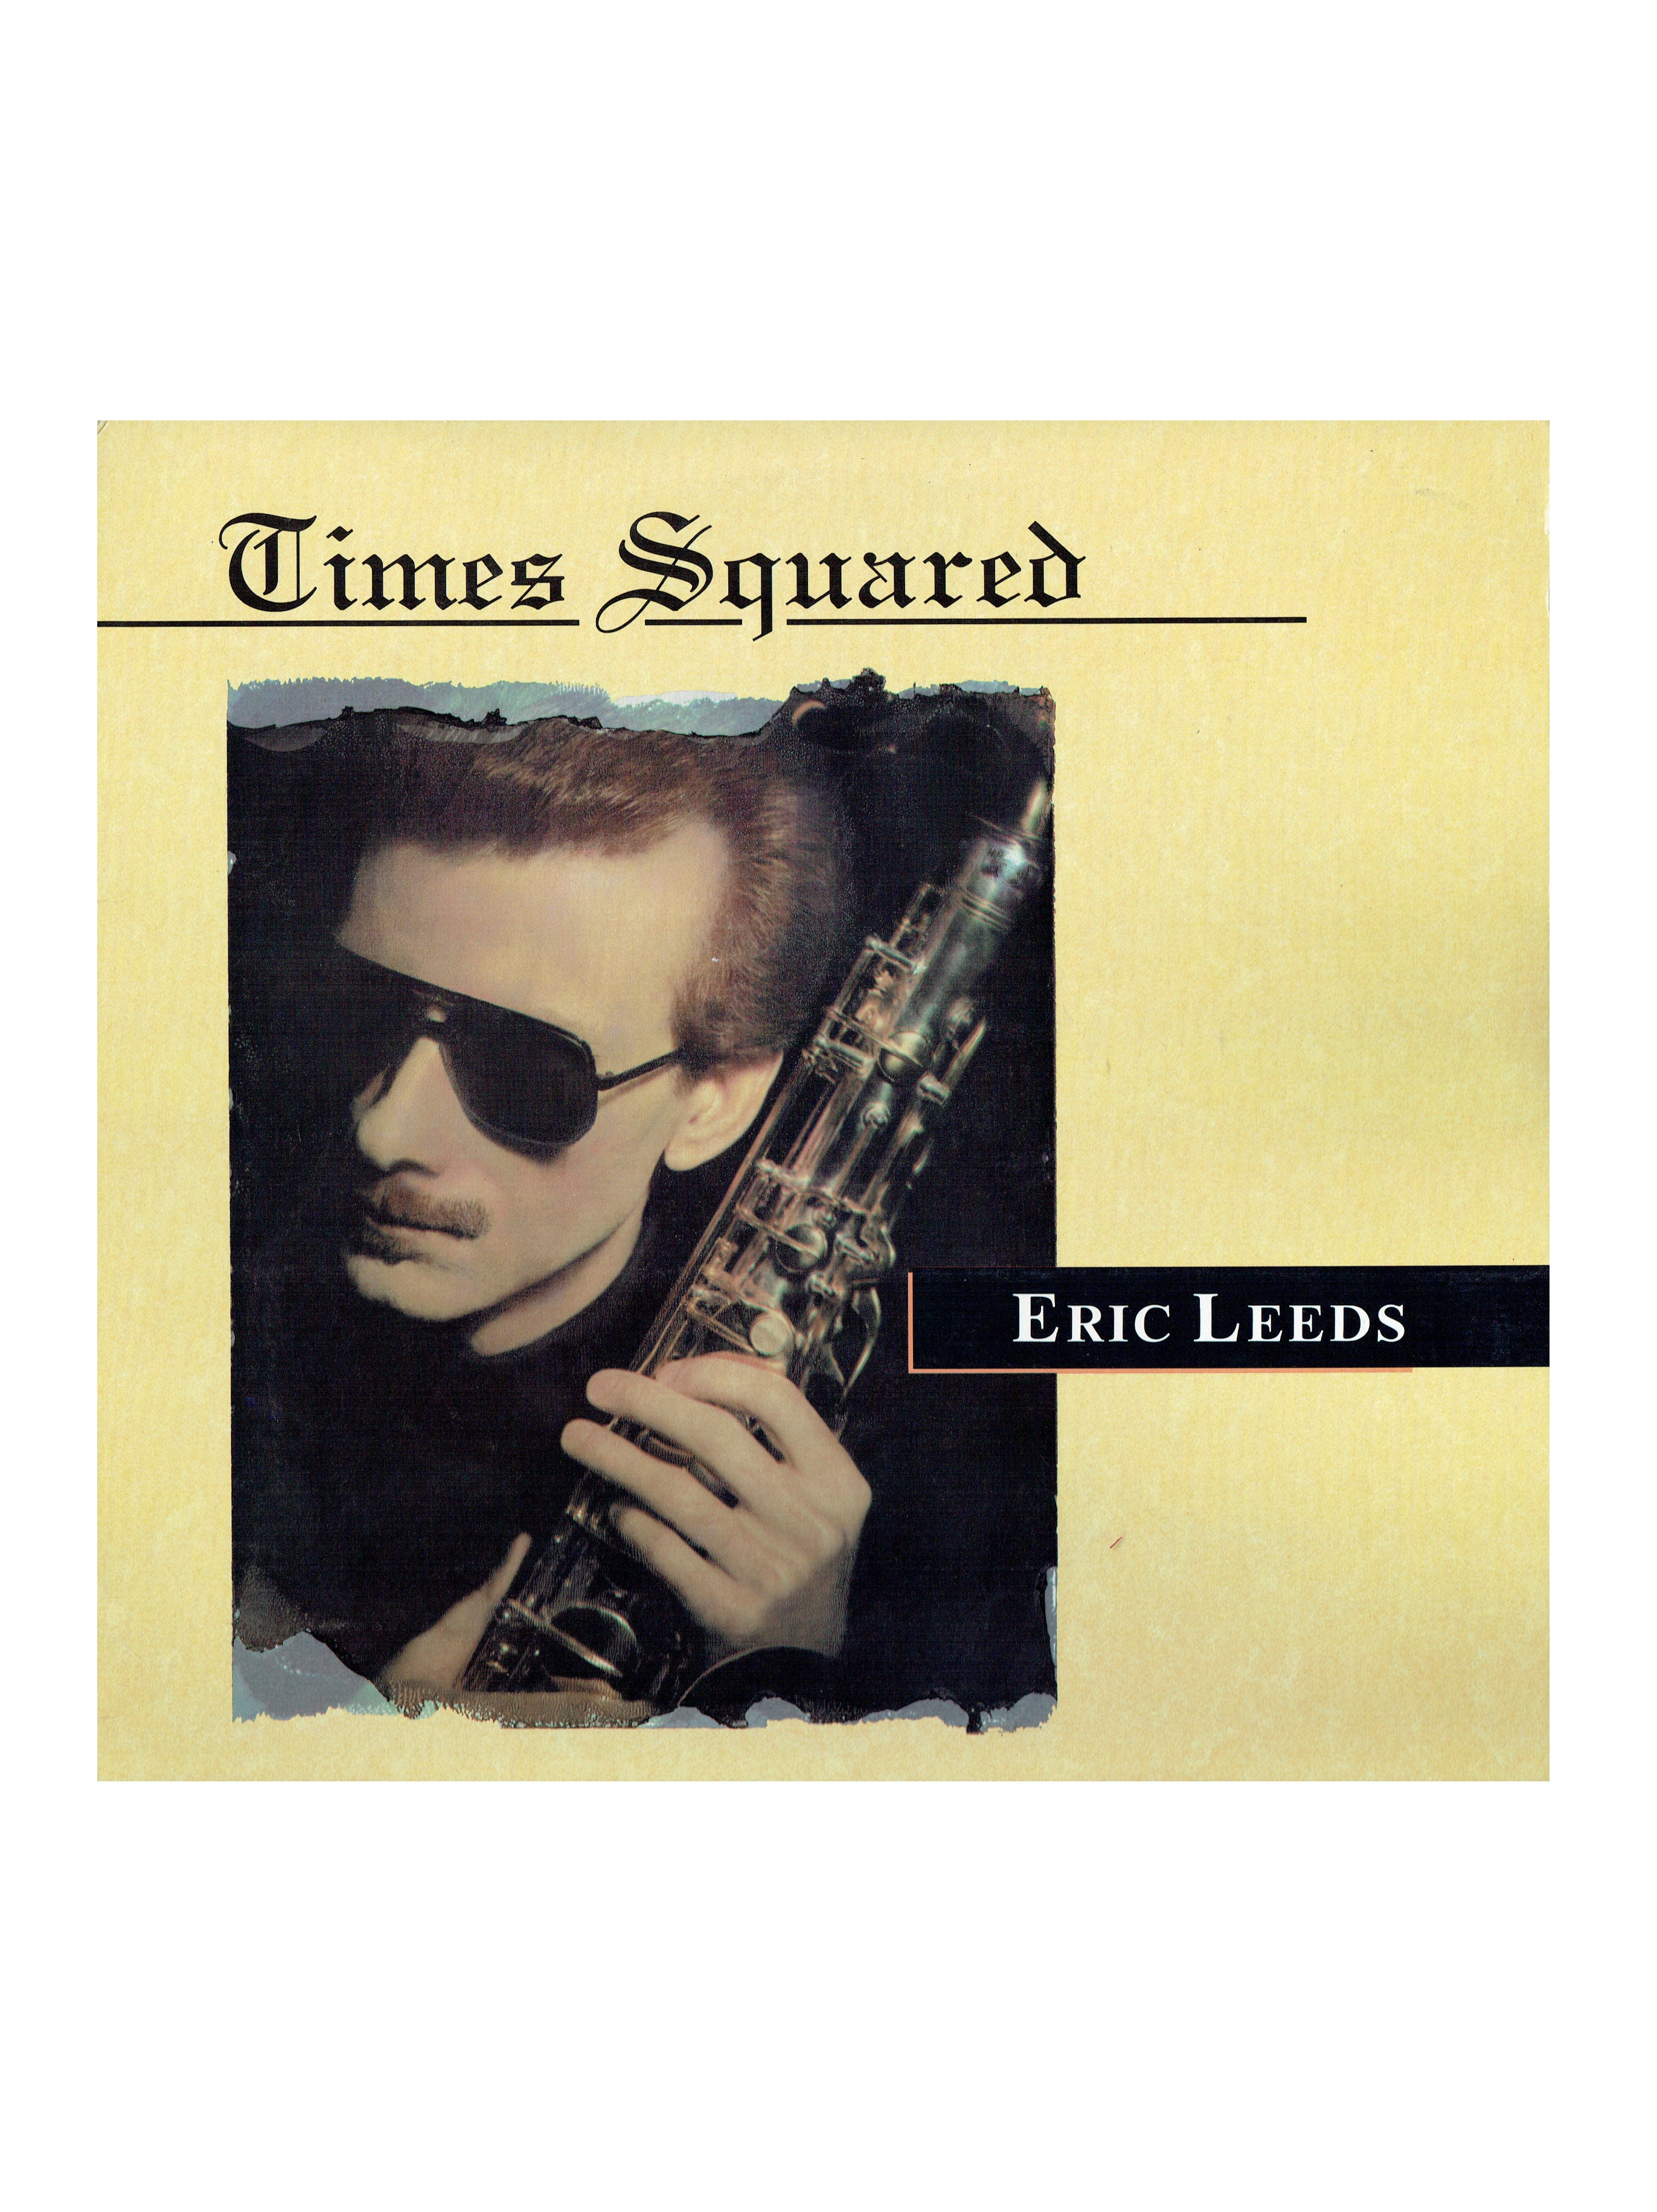 Eric Leeds Times Squared Vinyl Album Paisley Park Featuring Prince 1991 US